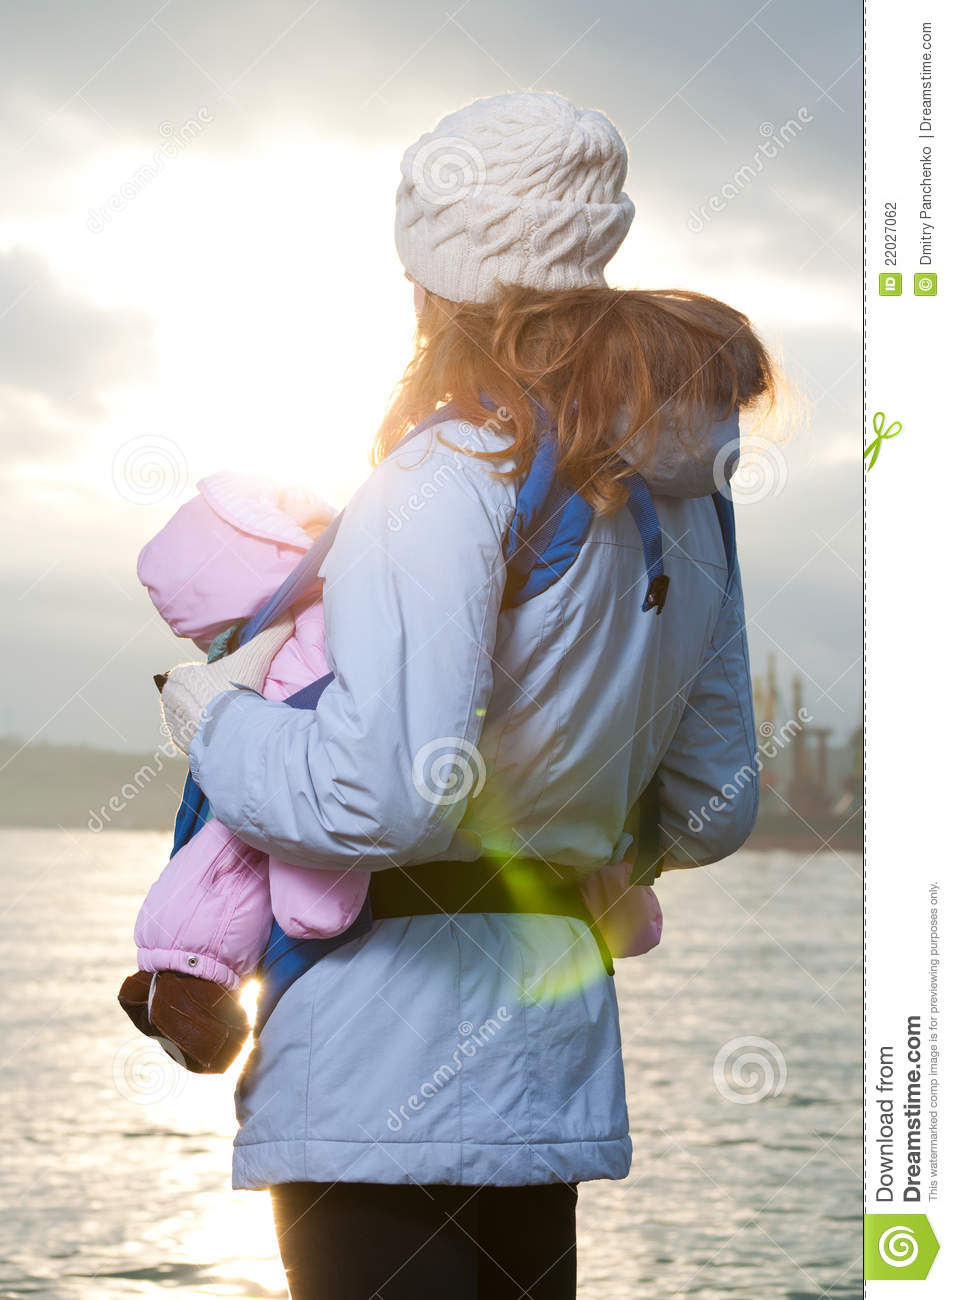 More similar stock images of lifestyle portrait of young mother